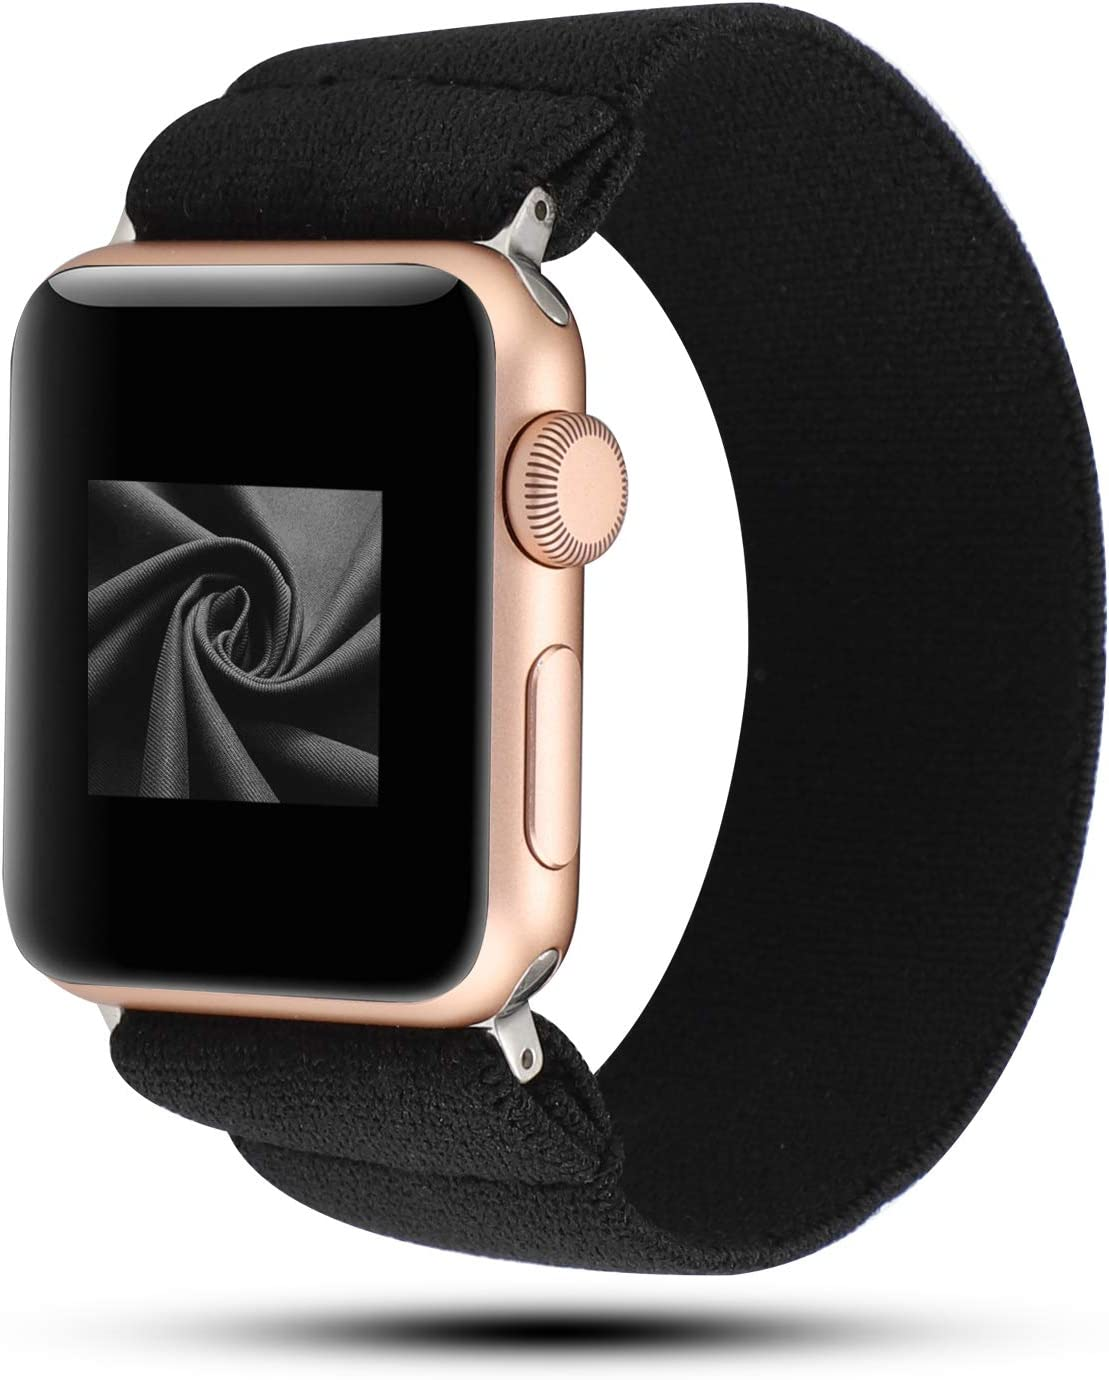 YOSWAN Stretchy Loop Strap Compatible for Apple Watch Band 40mm 38mm 44mm 42mm iWatch Series 6/5/4/3/2/1 Stretch Elastics Wristbelt (Nylon Black, 42mm/44mm)